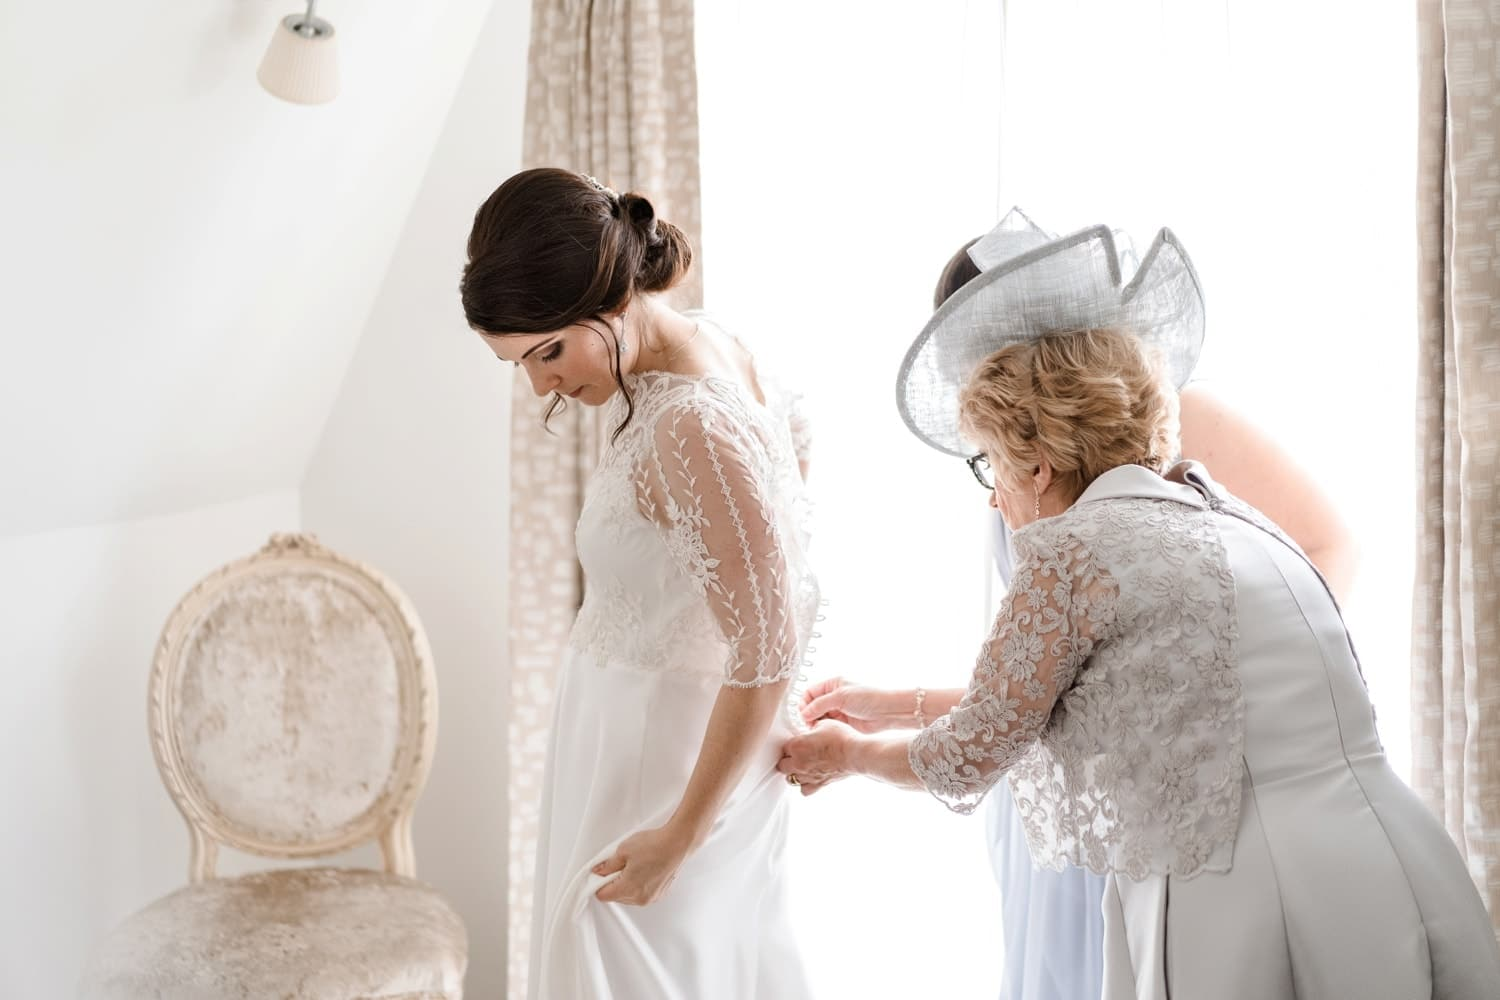 Bride's mother putting on dress